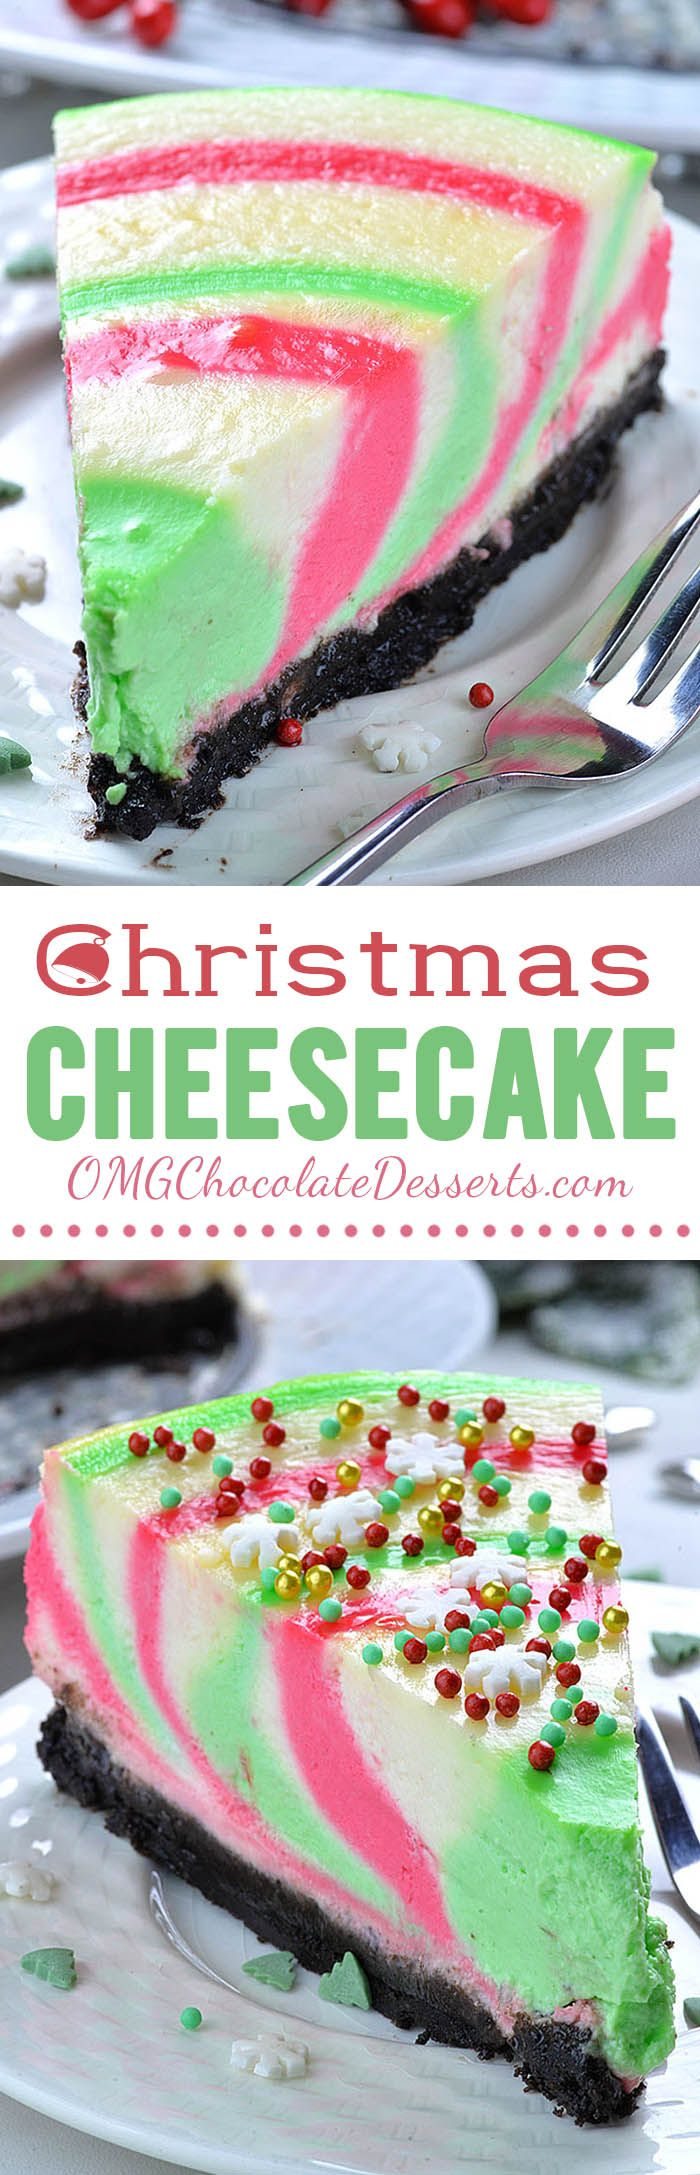 Christmas Cheesecake is fun and festive dessert for Xmas Holidays.